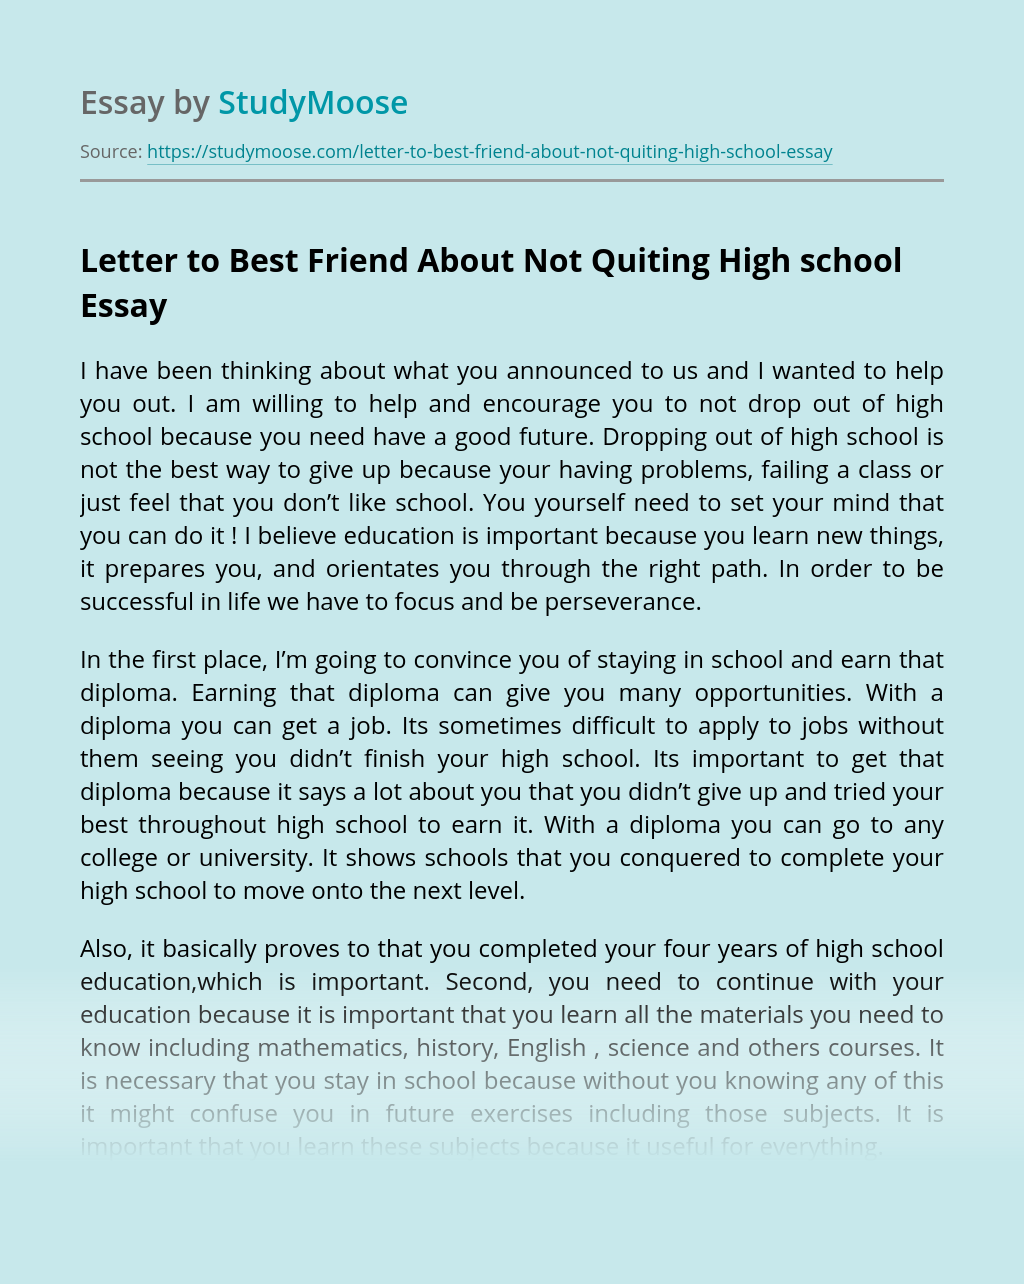 How to Convince Your Friend Not to Dropout of School Essay